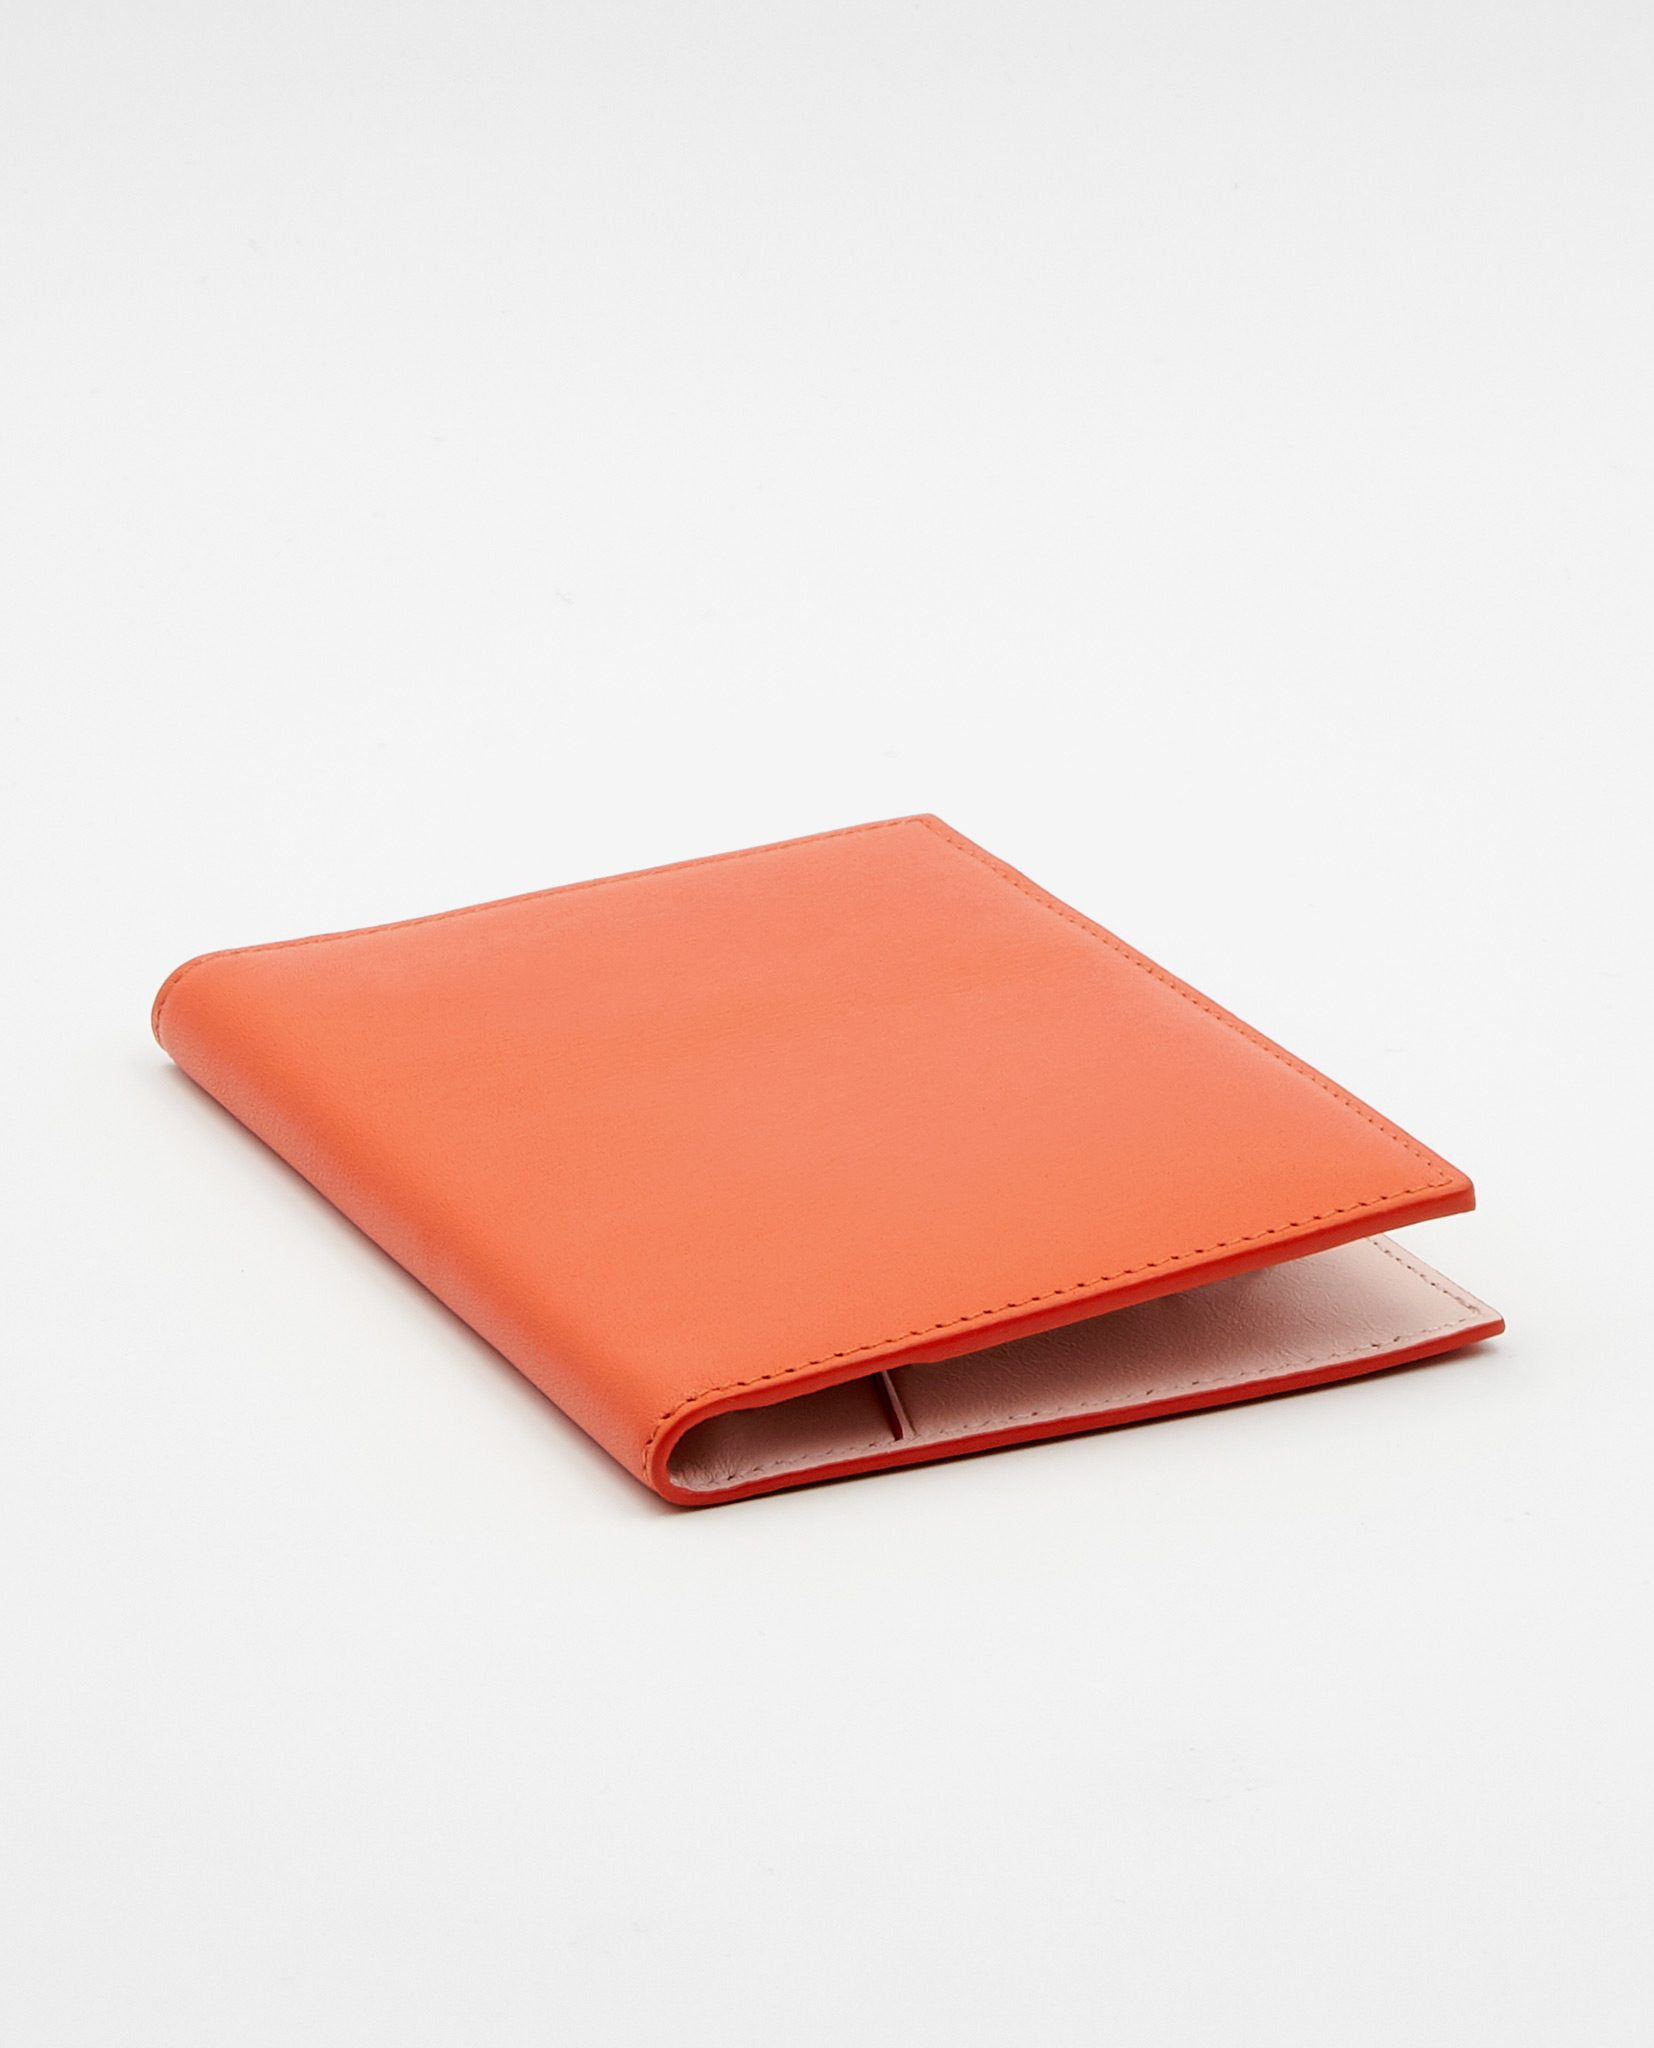 Soofre Smooth Leather Passport Holder Color Coral Blush